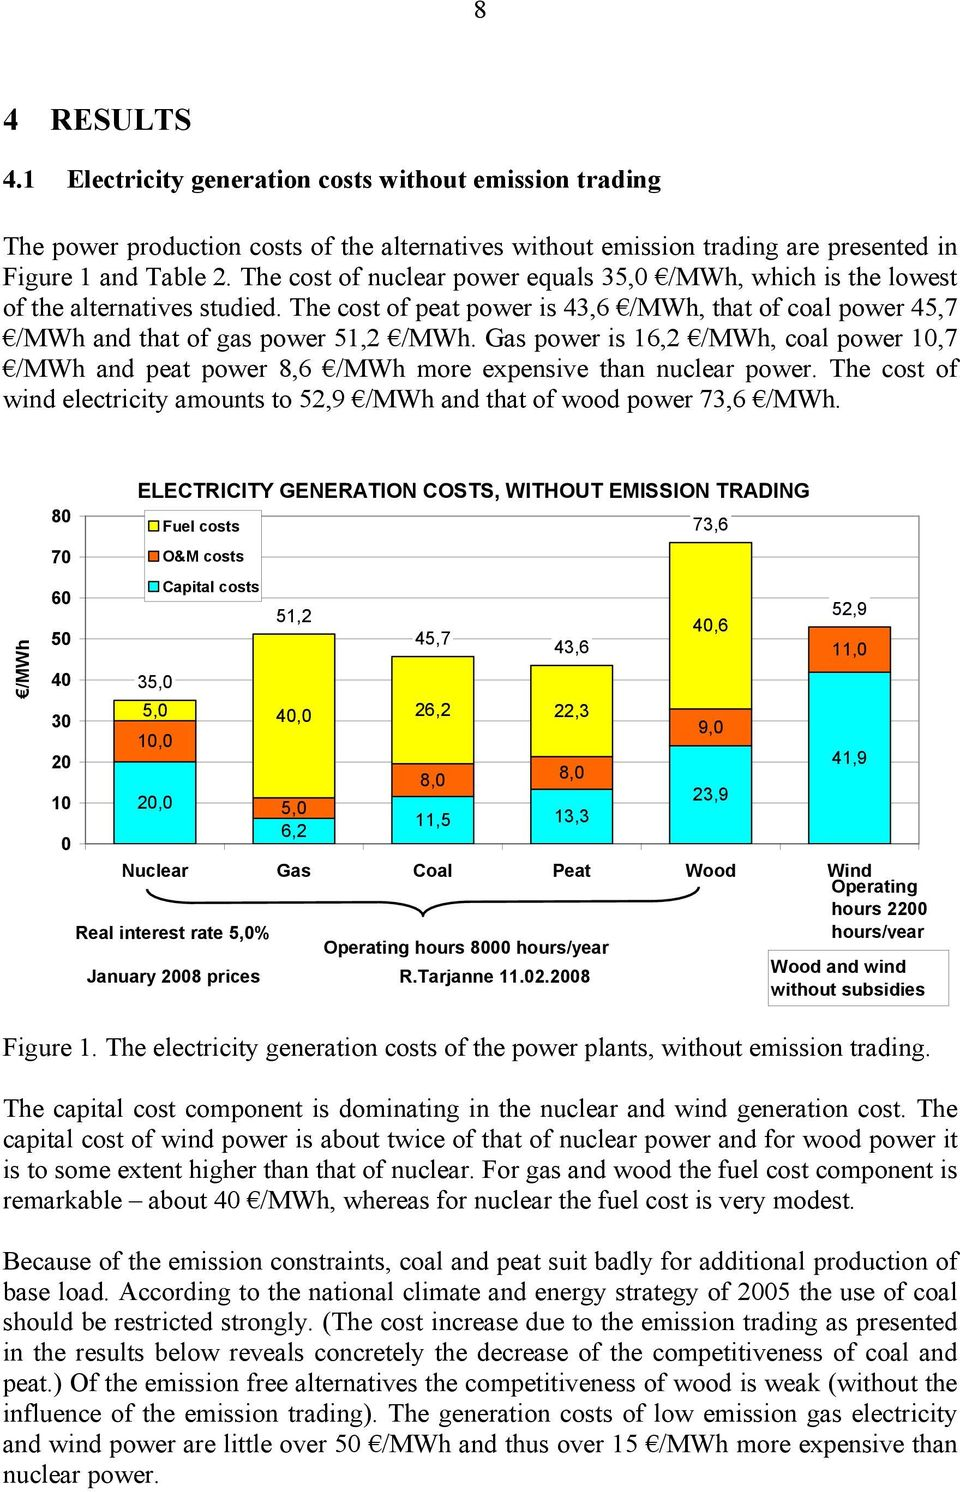 Gas power is 16,2 /MWh, coal power 1,7 /MWh and peat power 8,6 /MWh more expensive than nuclear power. The cost of wind electricity amounts to 52,9 /MWh and that of wood power 73,6 /MWh.